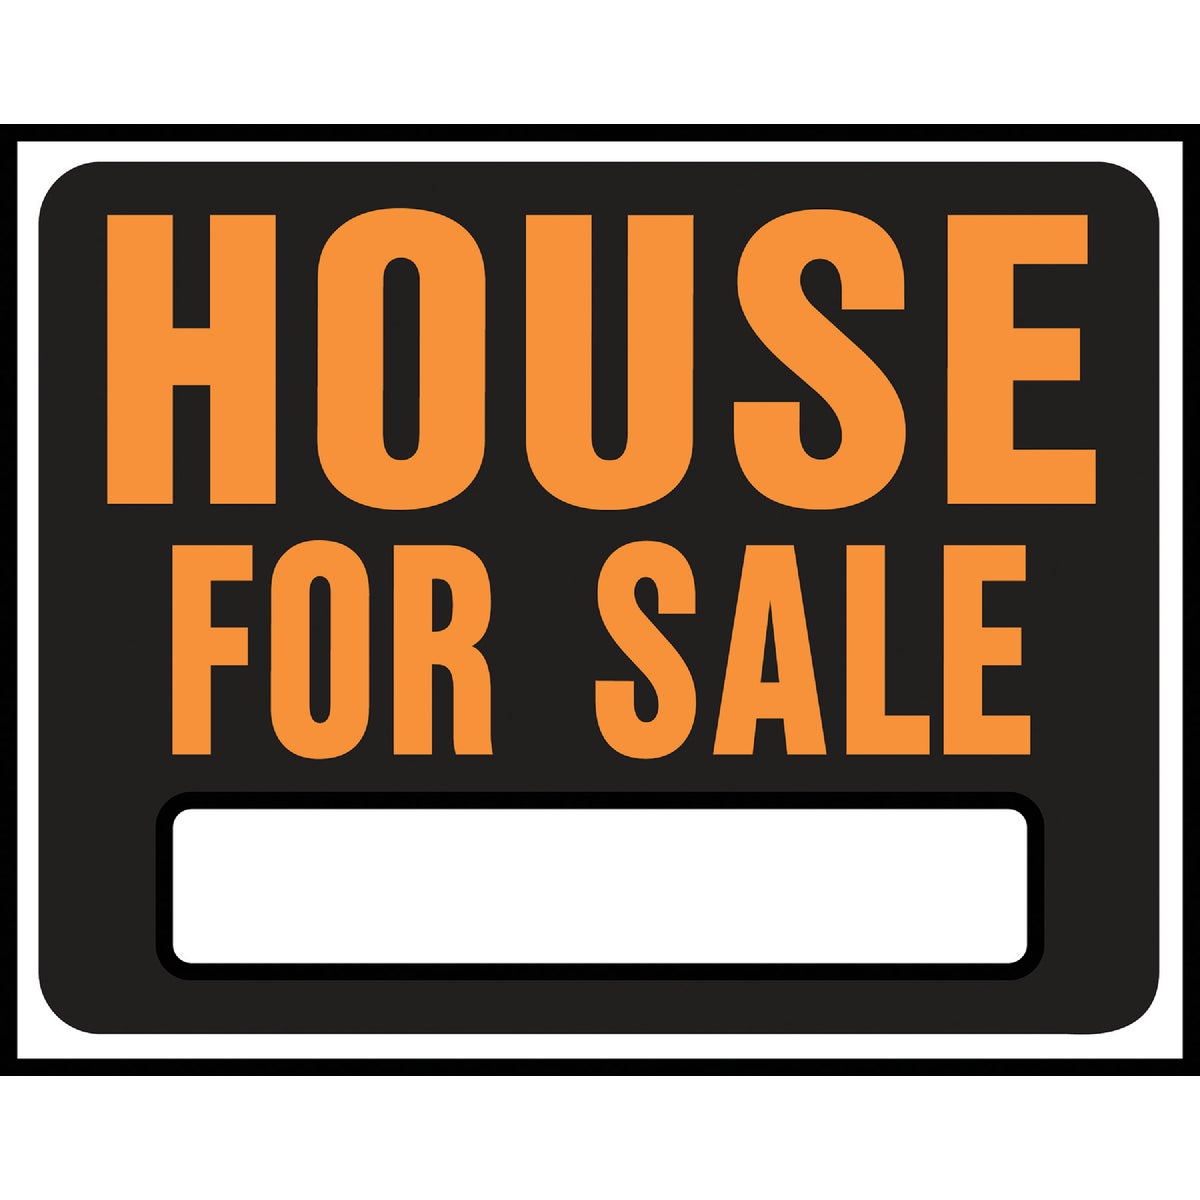 15X19 HOUSE SALE SIGN - SP-103 by Hy Ko Prods Co